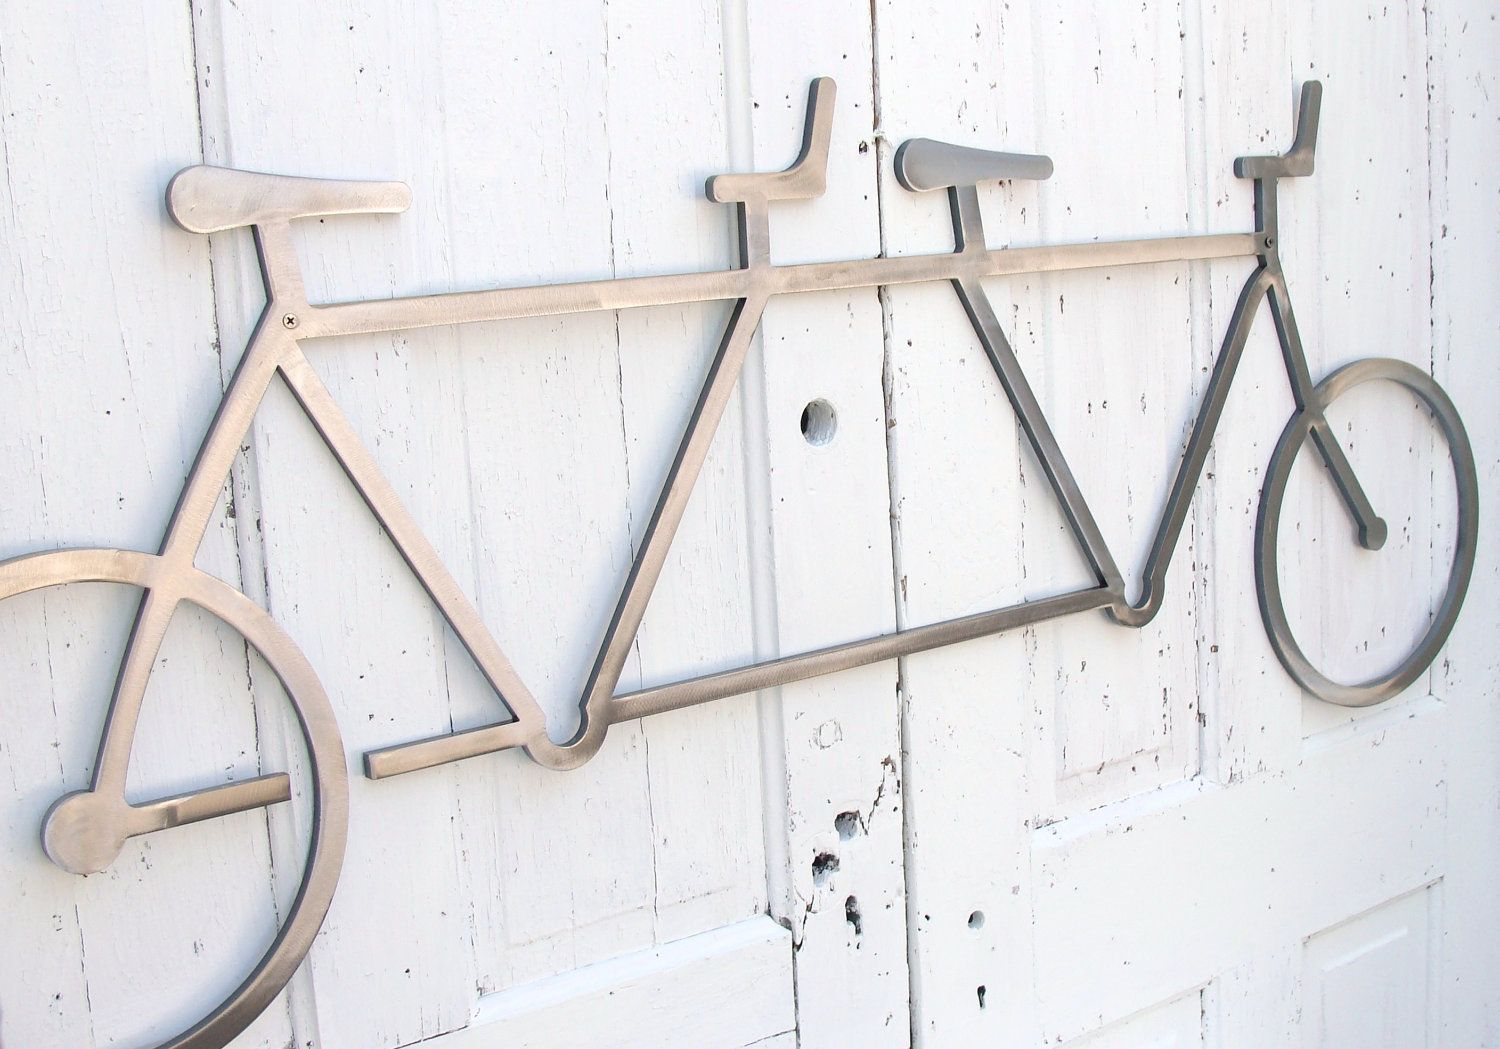 Gentil Metal Wall Art Bike Tandem Bicycle Sculpture Bike Bicycle Art Modern  Industrial Home Office Decor Wedding